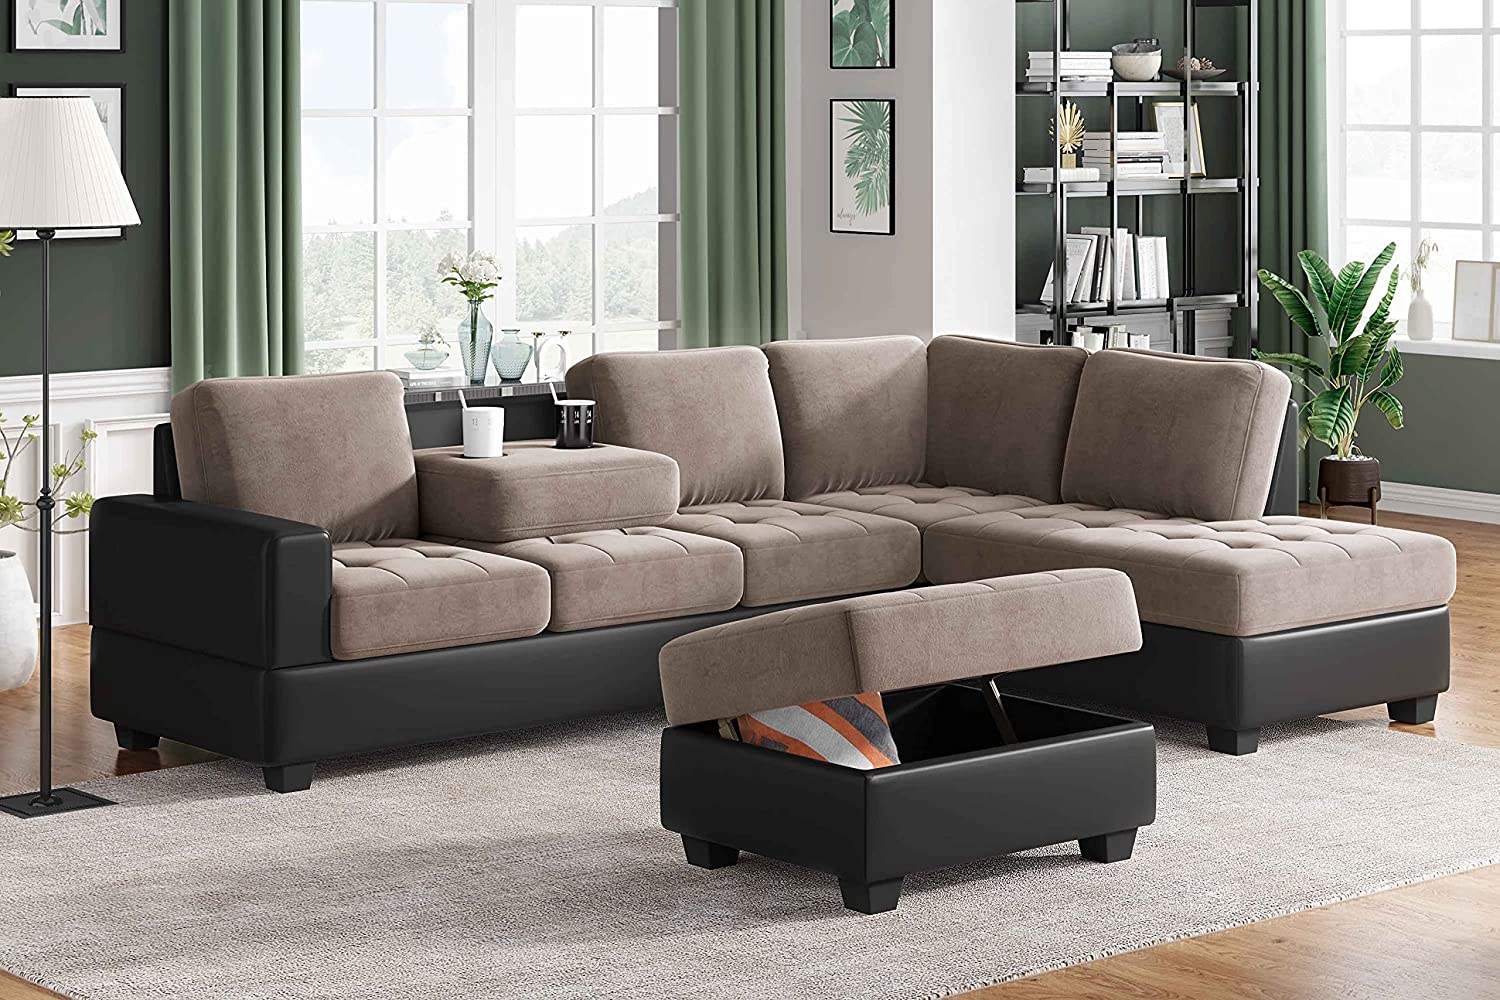 Cotoala Modern Large Sectional Set, L Shaped Microfiber Sofa Couch with with Reversible Chaise Lounge Storage Ottoman and Cup Holders for Living Room Furniture-Brown